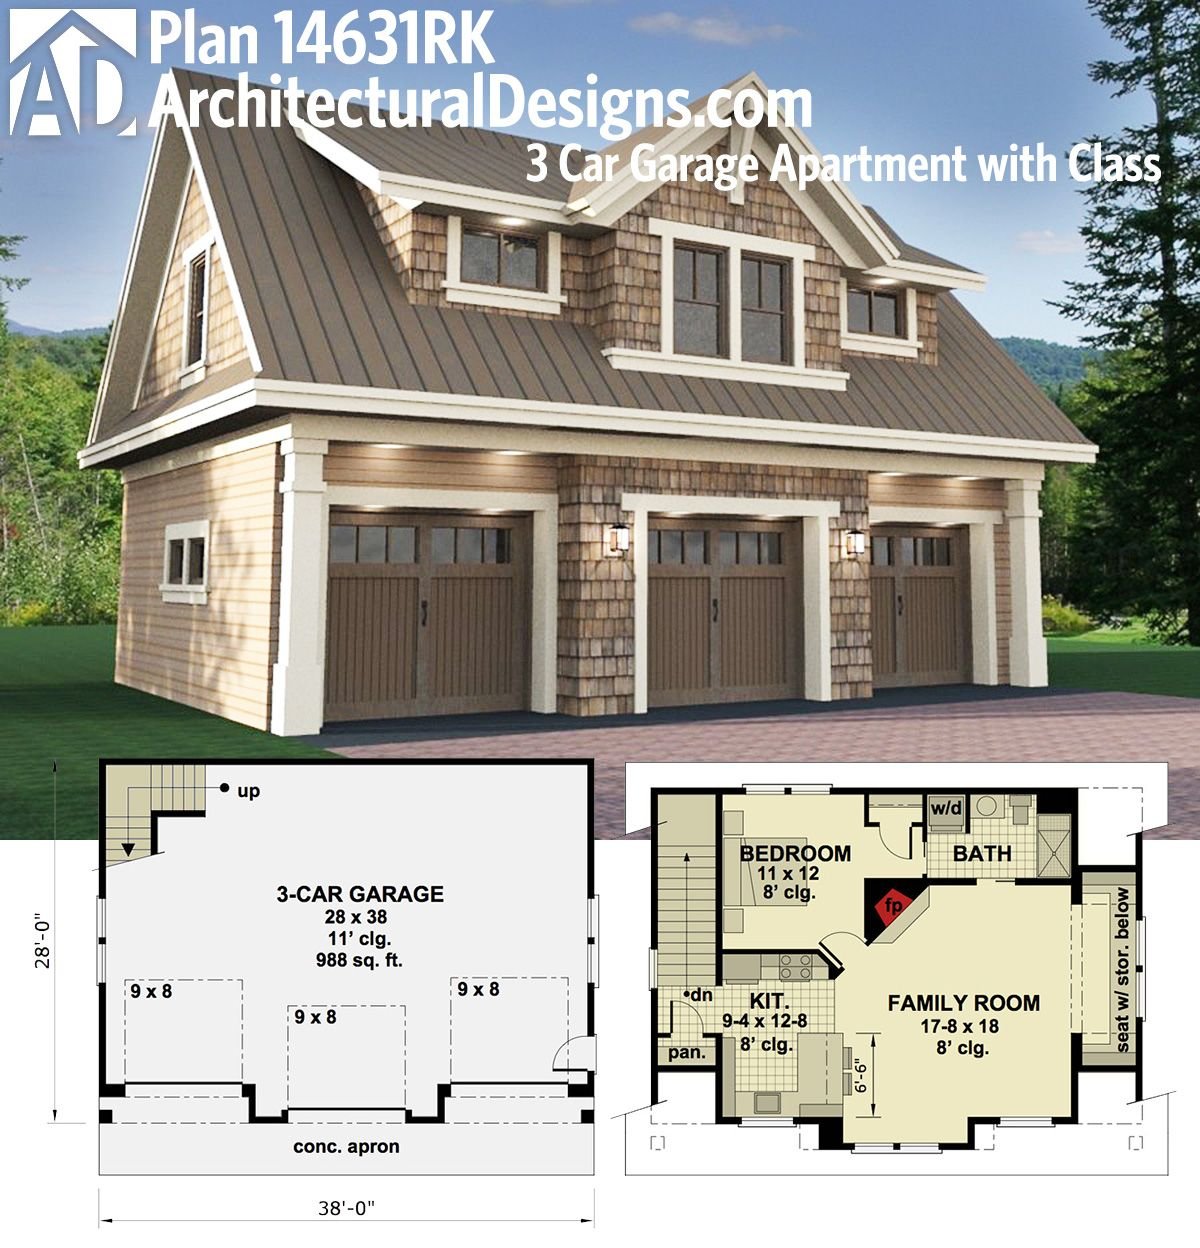 Plan 14631rk 3 car garage apartment with class carriage for Three car garage house plans